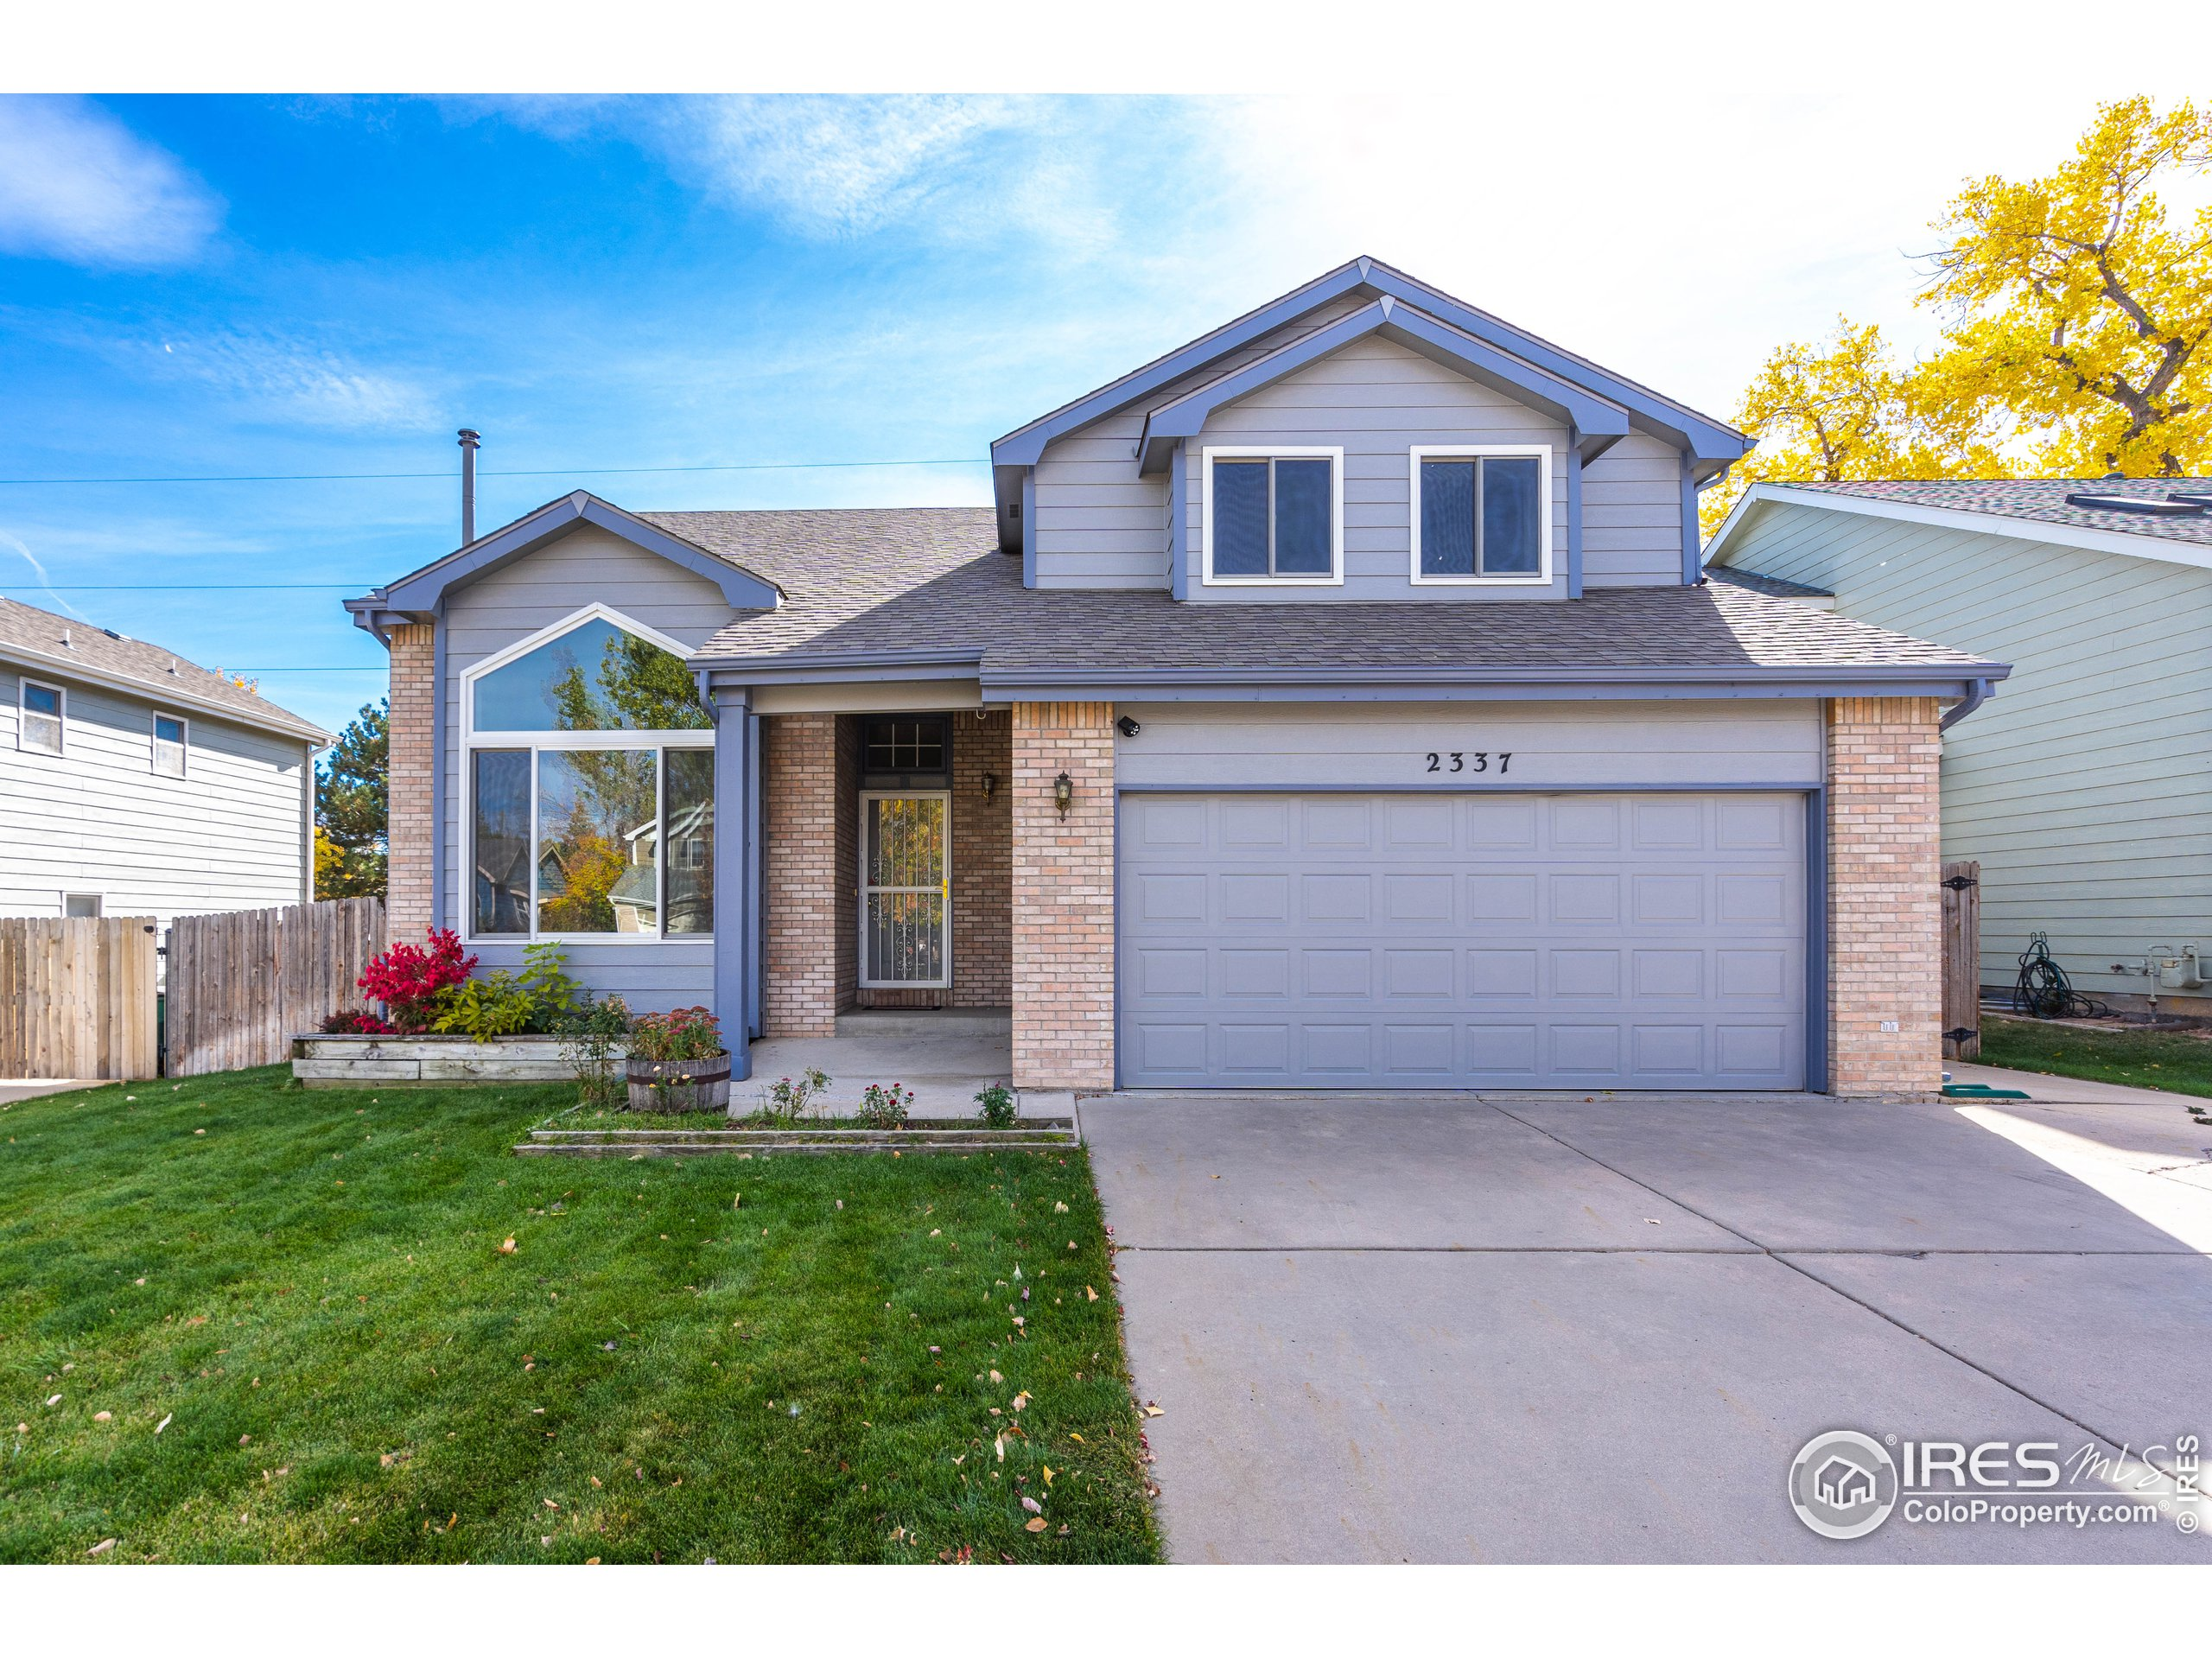 This exceptional home has been well cared for & purposeful upgraded. Upgrades include 4.93 kW Solar System, new: furnace, H2O heater, active radon, A/C & humidifier, SS appliances, exterior paint, &  carpet. Leaving the cosmetic touches ready for your style while providing the necessary & costly updates for a home. Enjoy the extended patio for entertaining w/style! Focused landscaping provides privacy, shade, & sound buffer in the lrg, fenced, irrigated yard! Walking through the front door, be sure to note the pellet stove, vaulted ceilings, & new carpet. Enjoy the southern exposure as you move to the kitchen, dining rm, & family rm. Turn on your gas fireplace & watch the snowfall! Step upstairs & find 4 sizable bdrms & full bath, & owner suite w/ luxury bath, walk-in closet & vaulted ceilings. But that is not all; 1080 sqft awaits you in the basement w/ bath rough-in. Perfect location for CO living close to parks, trails, bike paths, restaurants, & Horsetooth Reservoir.